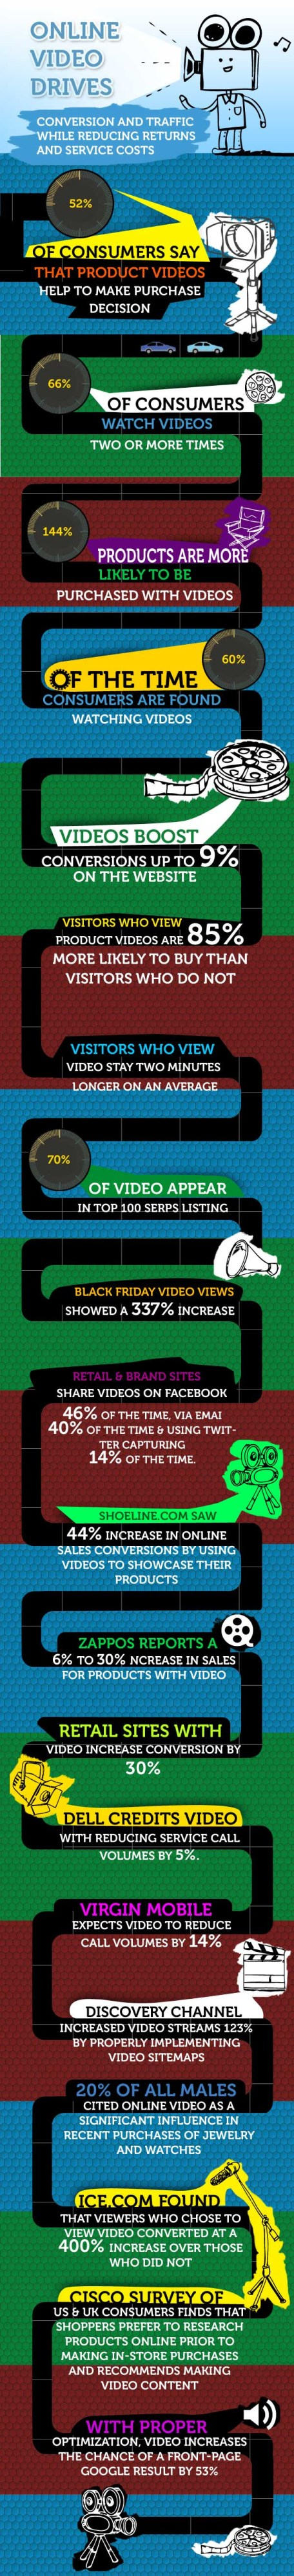 Video Marketing Research